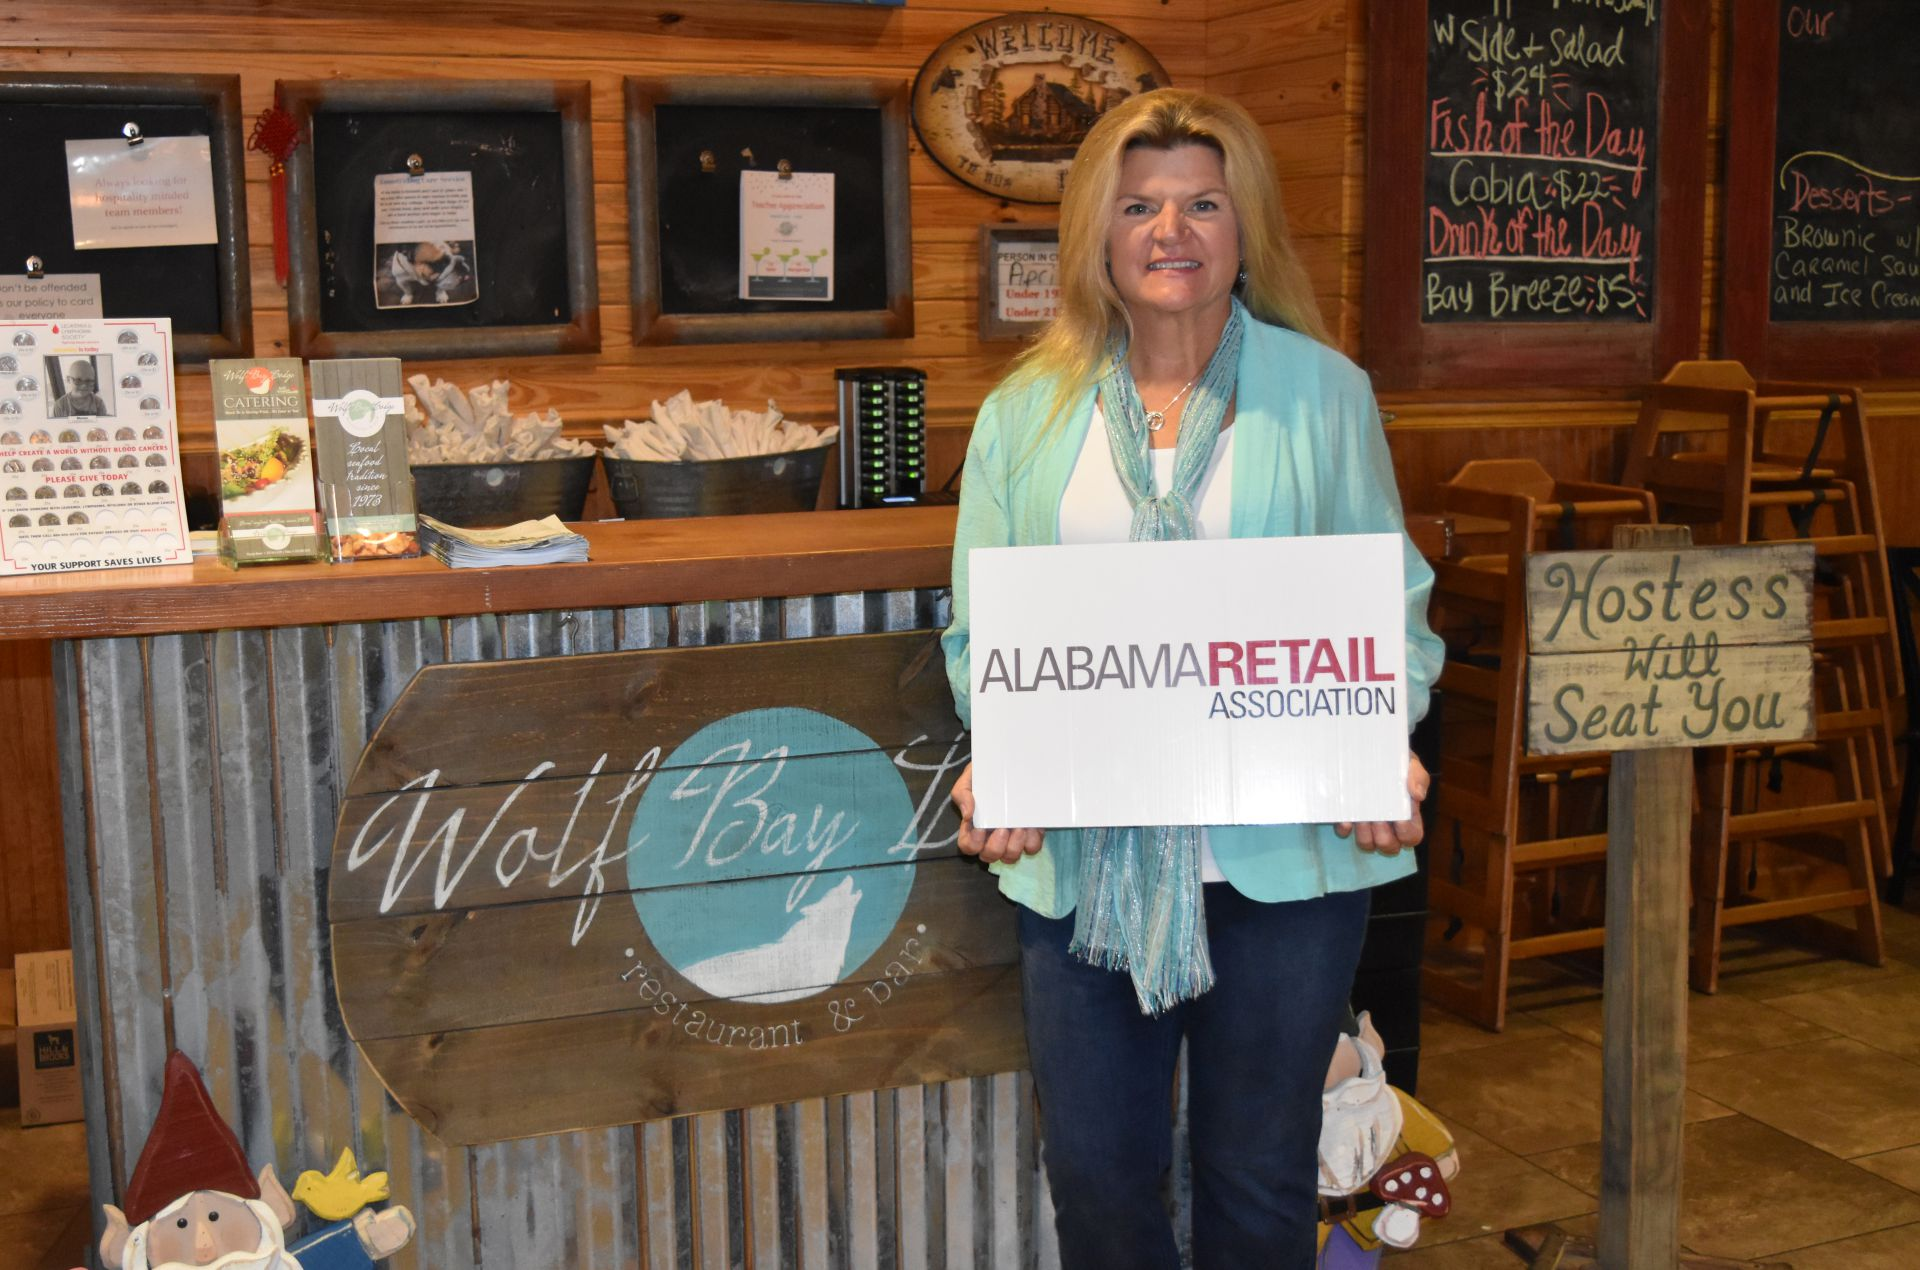 WOLF BAY RESTAURANT EARNS SILVER RETAILER OF THE YEAR TITLE